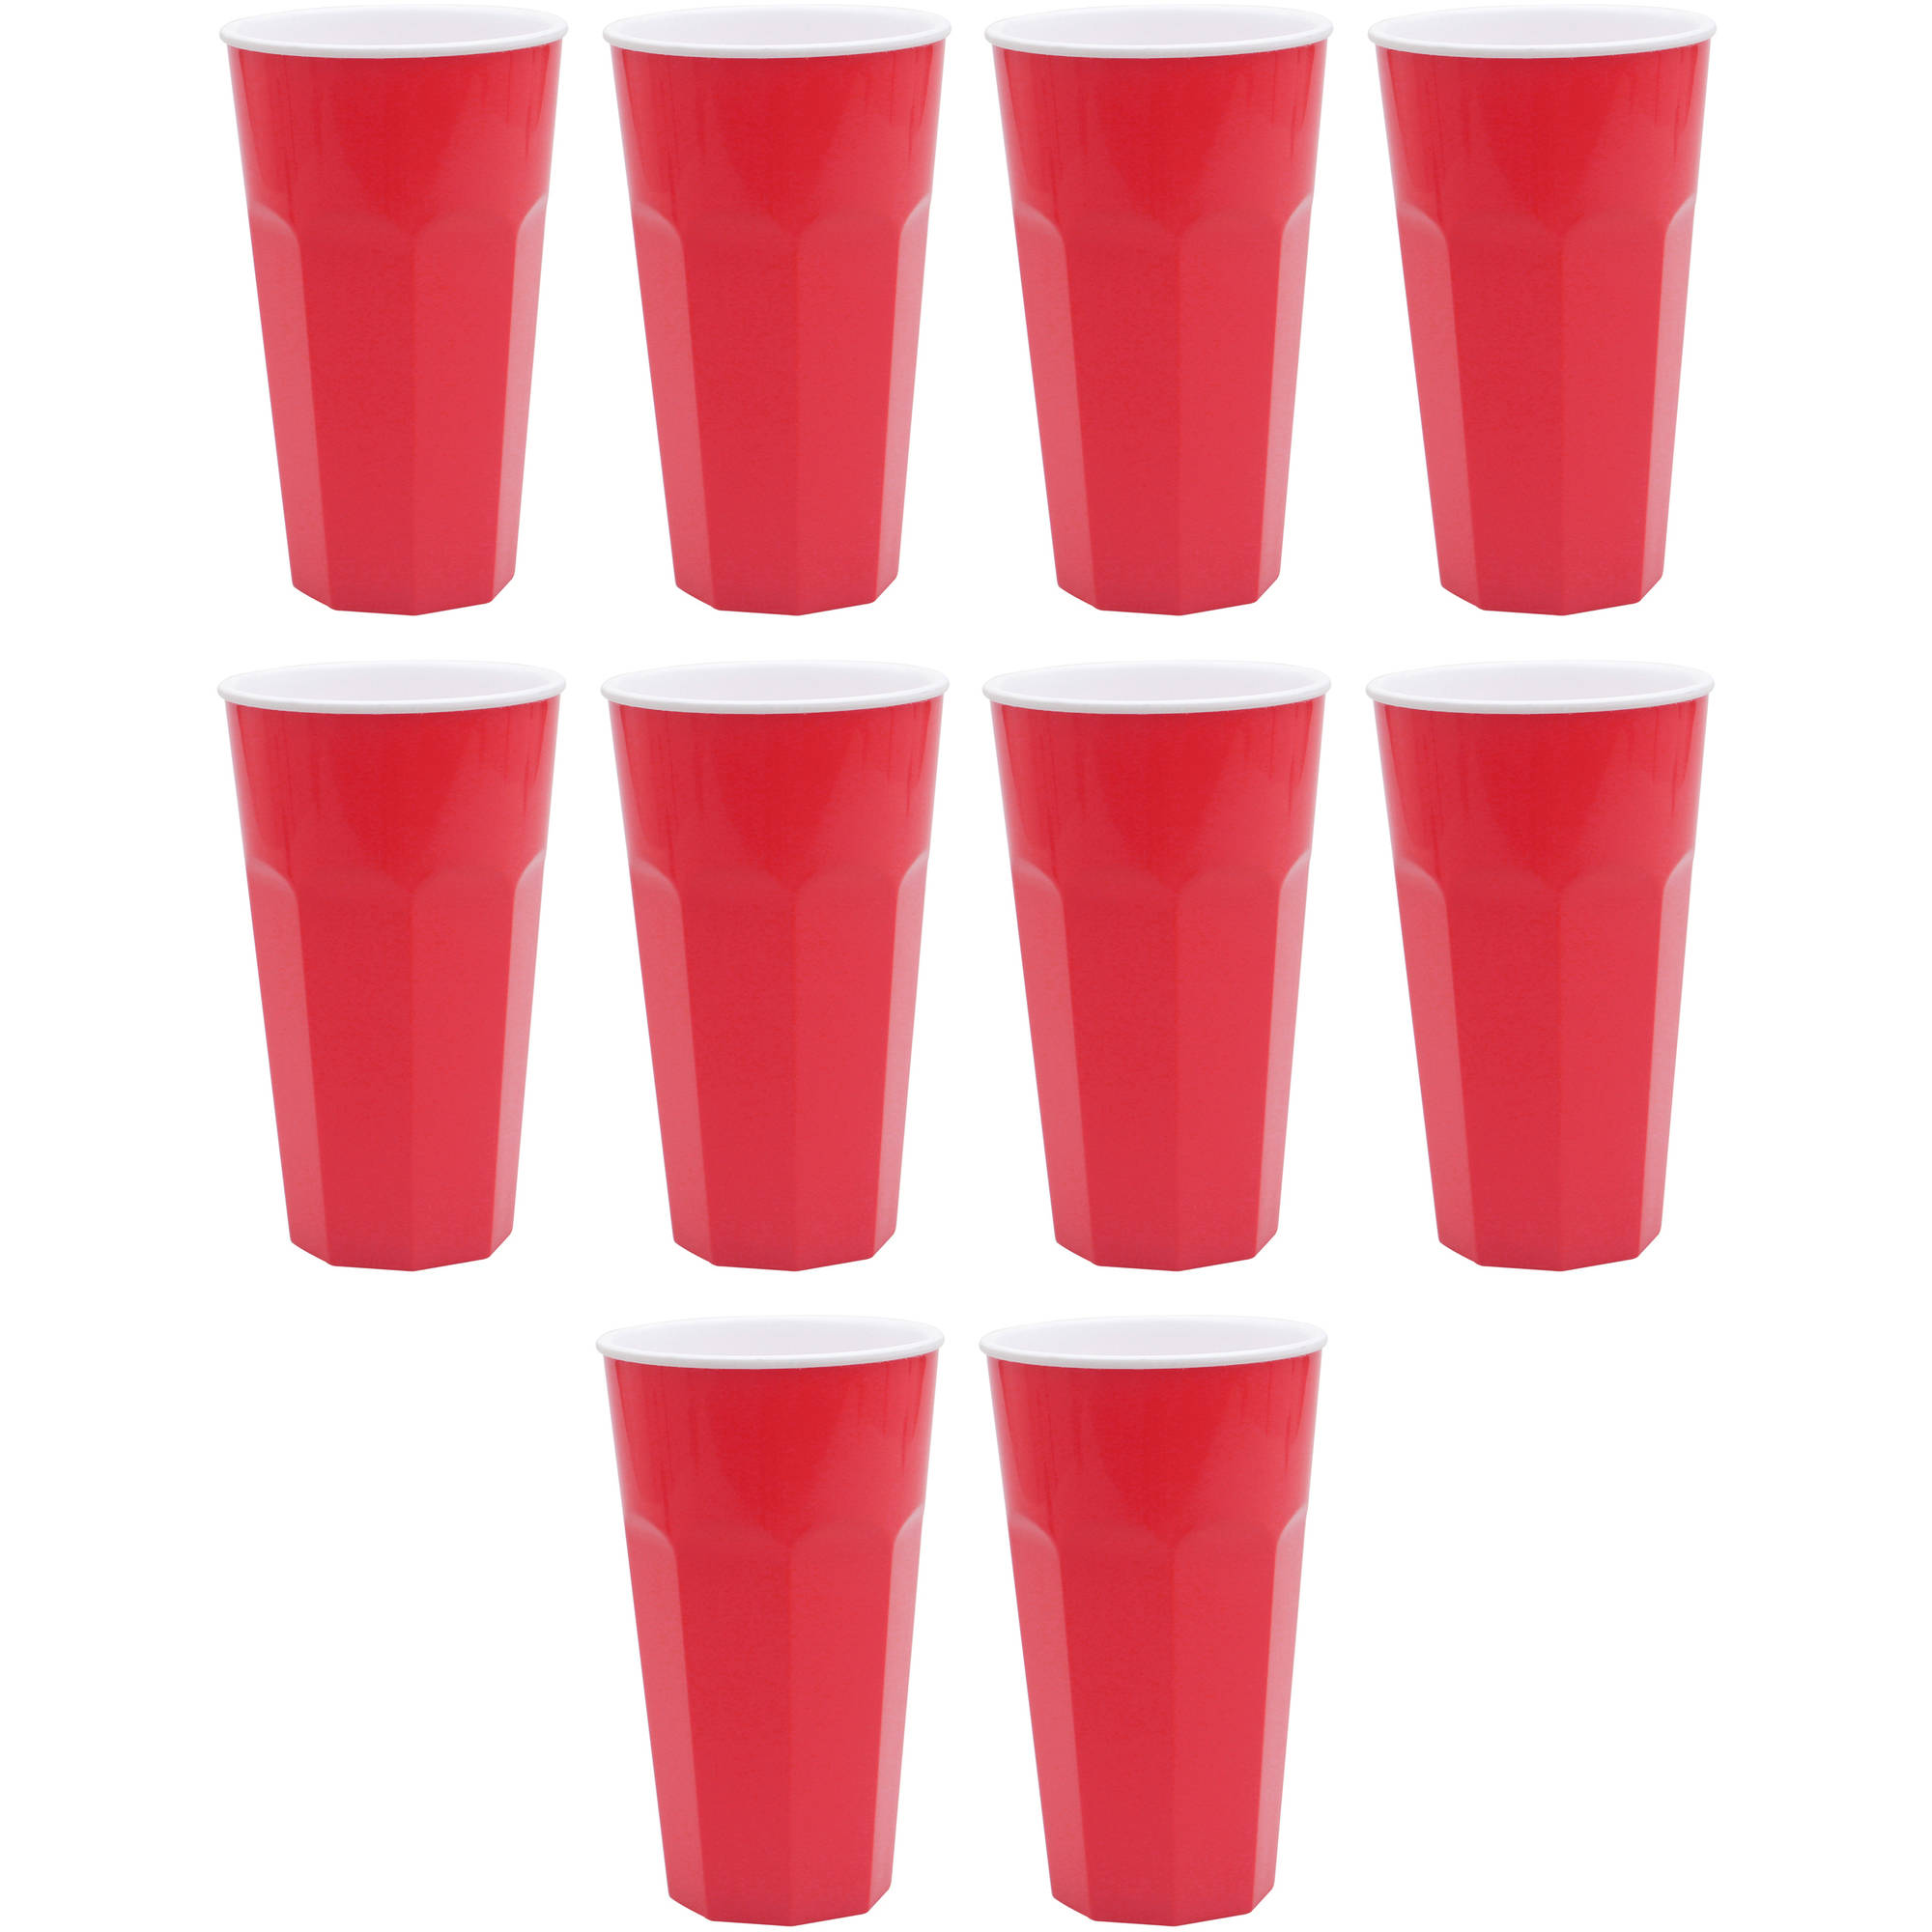 35 oz Double Wall Tumbler, 10-Pack